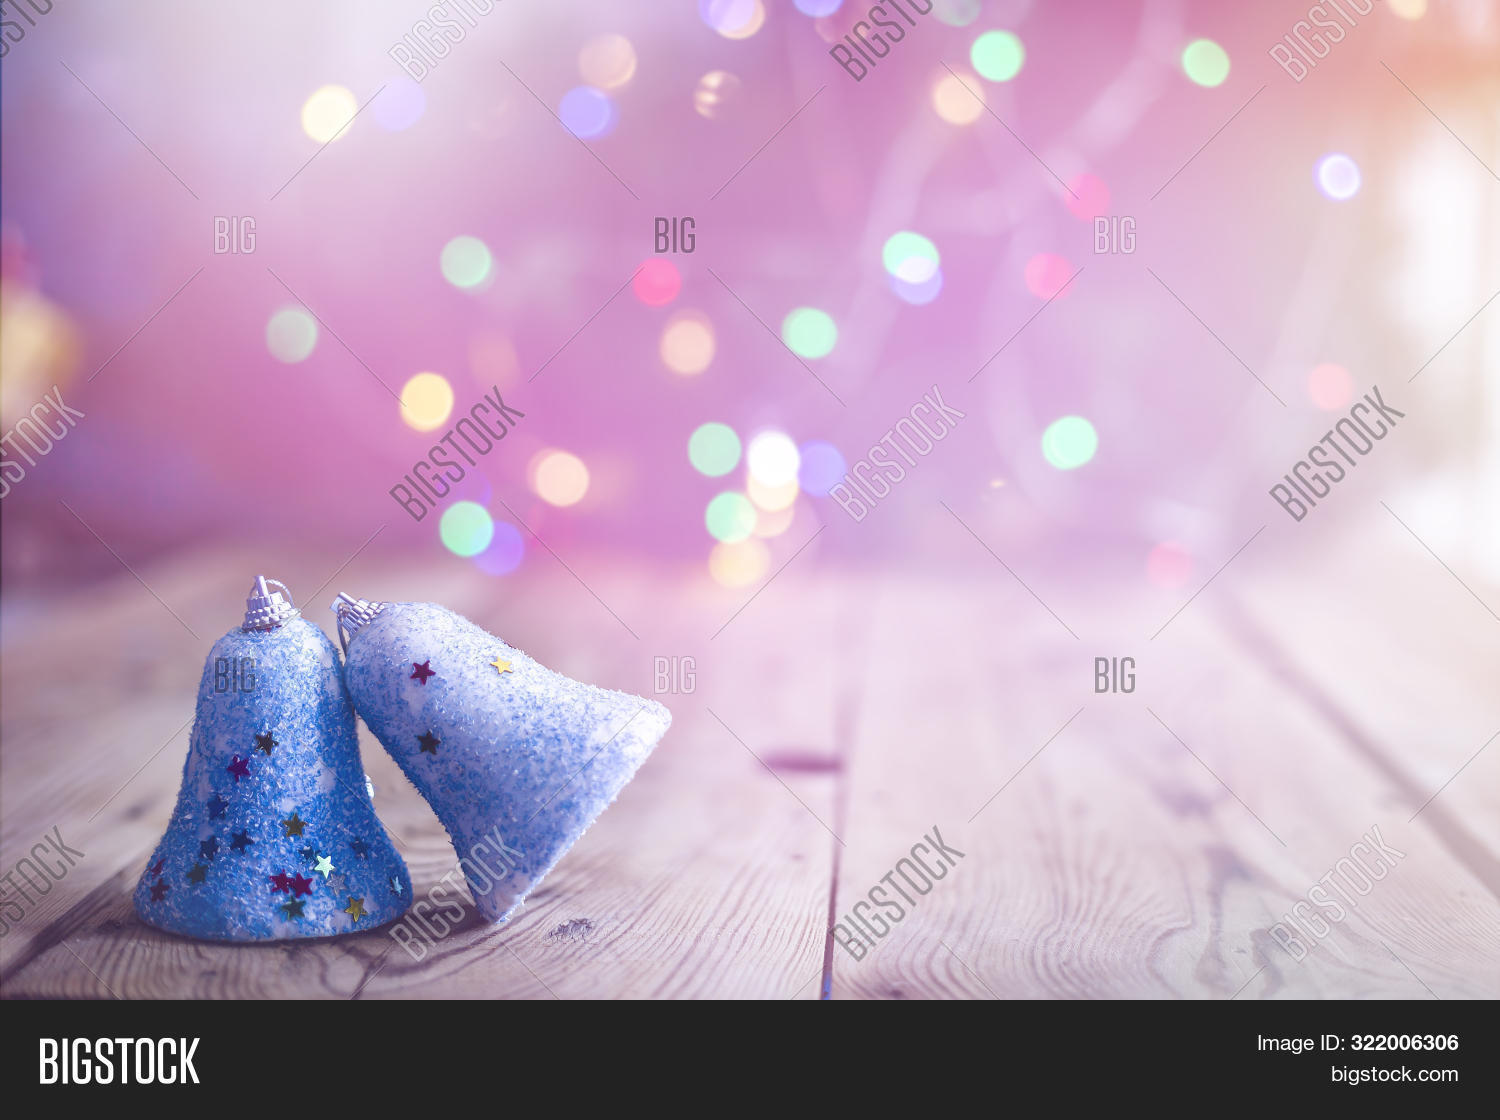 2020,advent,background,ball,blur,blurry,bokeh,celebrate,celebration,christmas,colourful,colours,concept,cone,copy,december,decorate,decoration,decorative,eve,festive,gift,gold,greeting,happy,holiday,horizontal,light,magic,merry,new,nobody,party,pine,rustic,seasonal,snow,snowfall,space,text,toy,tree,vibrant,vintage,weihnachten,winter,wood,wooden,xmas,year